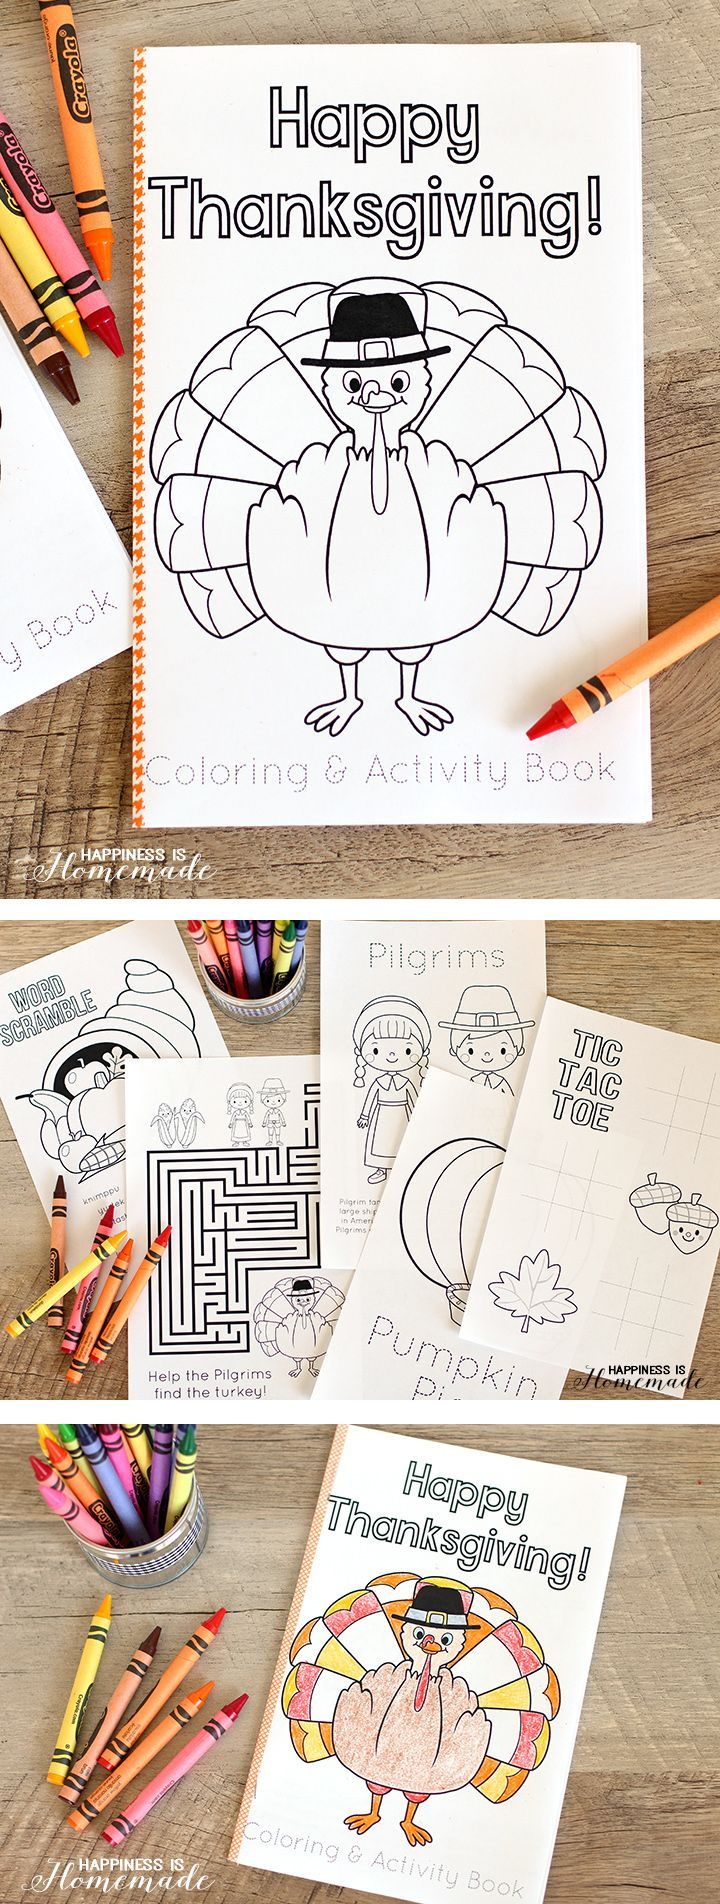 This free printable thanksgiving coloring u activity book is the